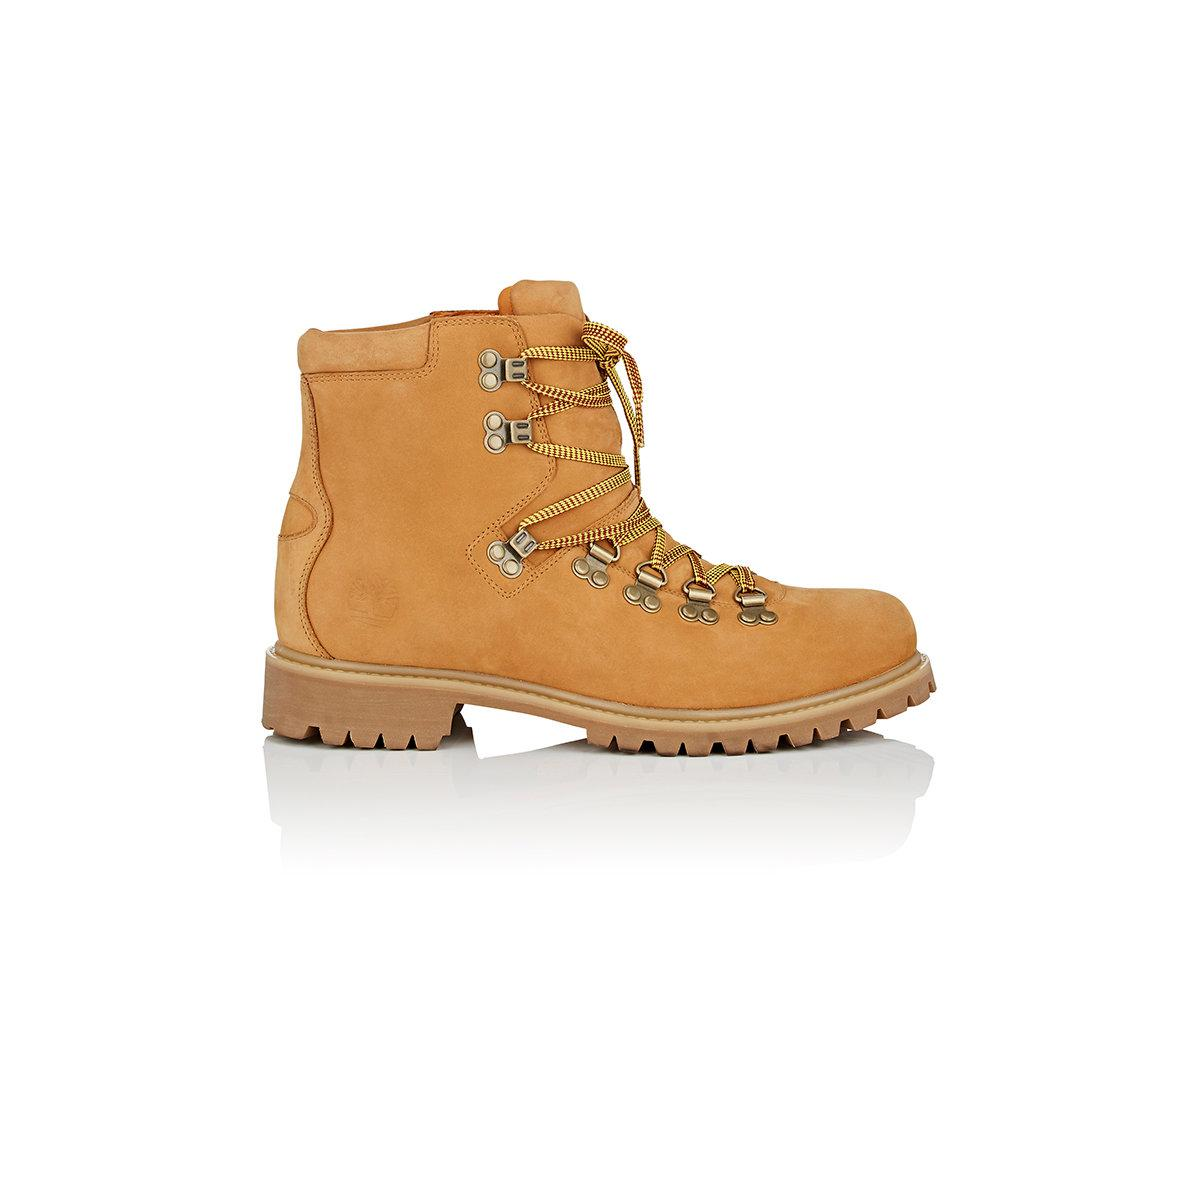 Mens BNY Sole Series: Authentic Hike Nubuck Boots Timberland fhAummh0P